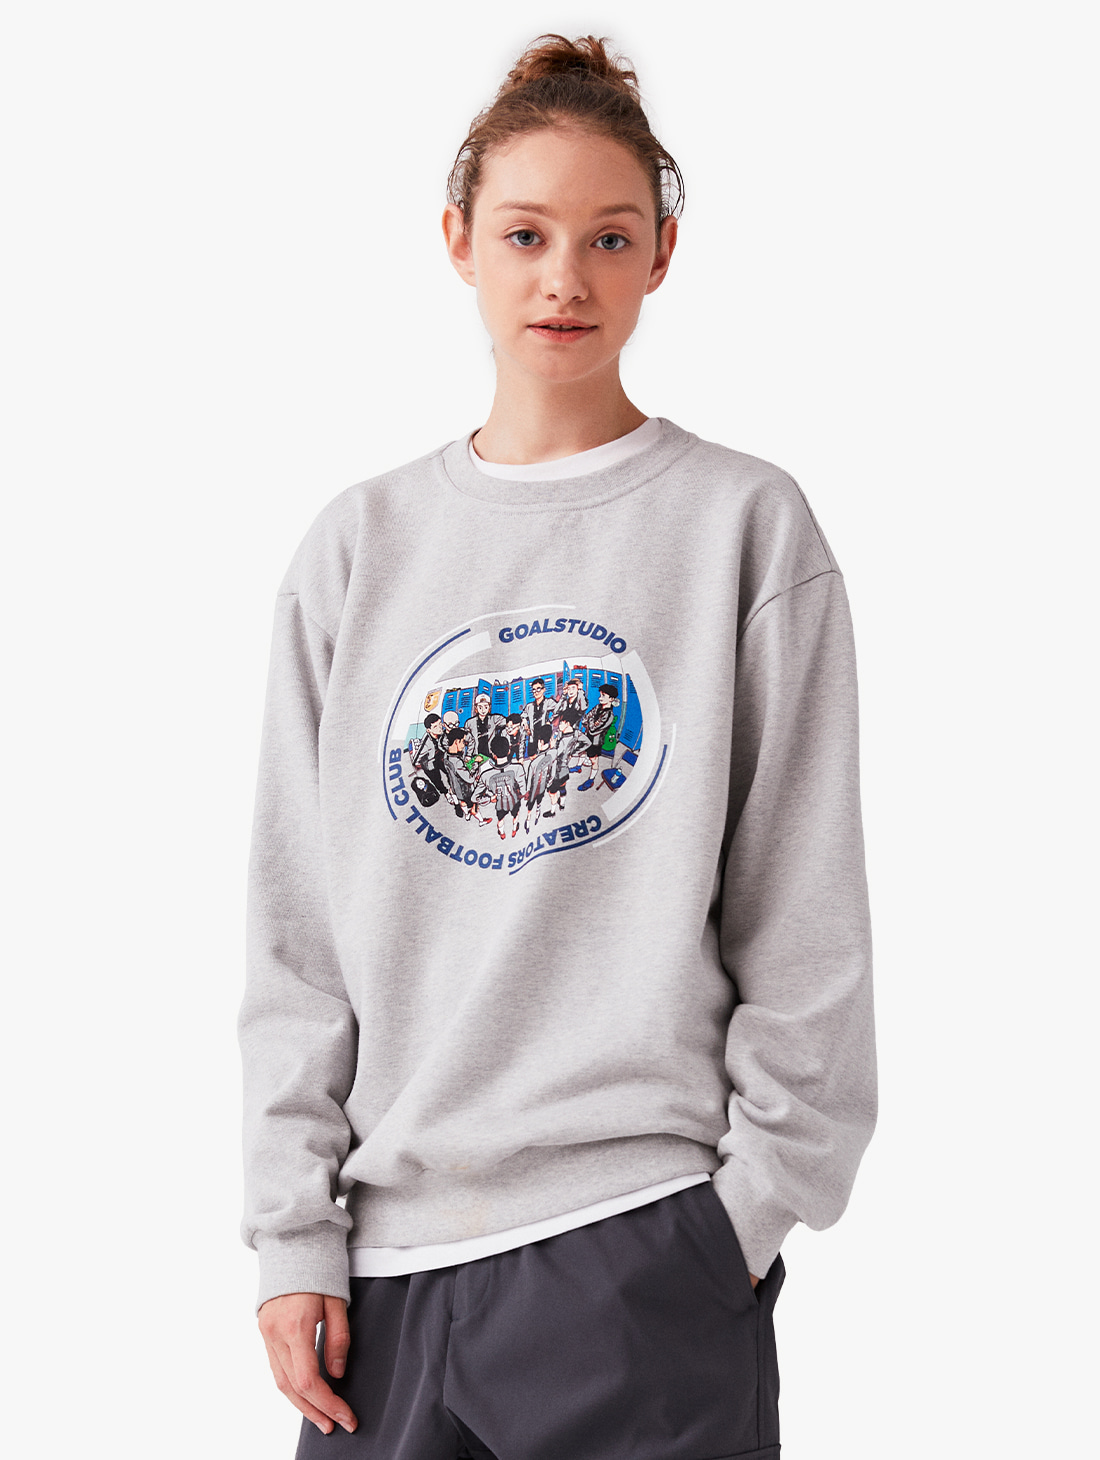 GOALSTUDIO CFC TEAM GRAPHIC SWEATSHIRT (2 Colors)